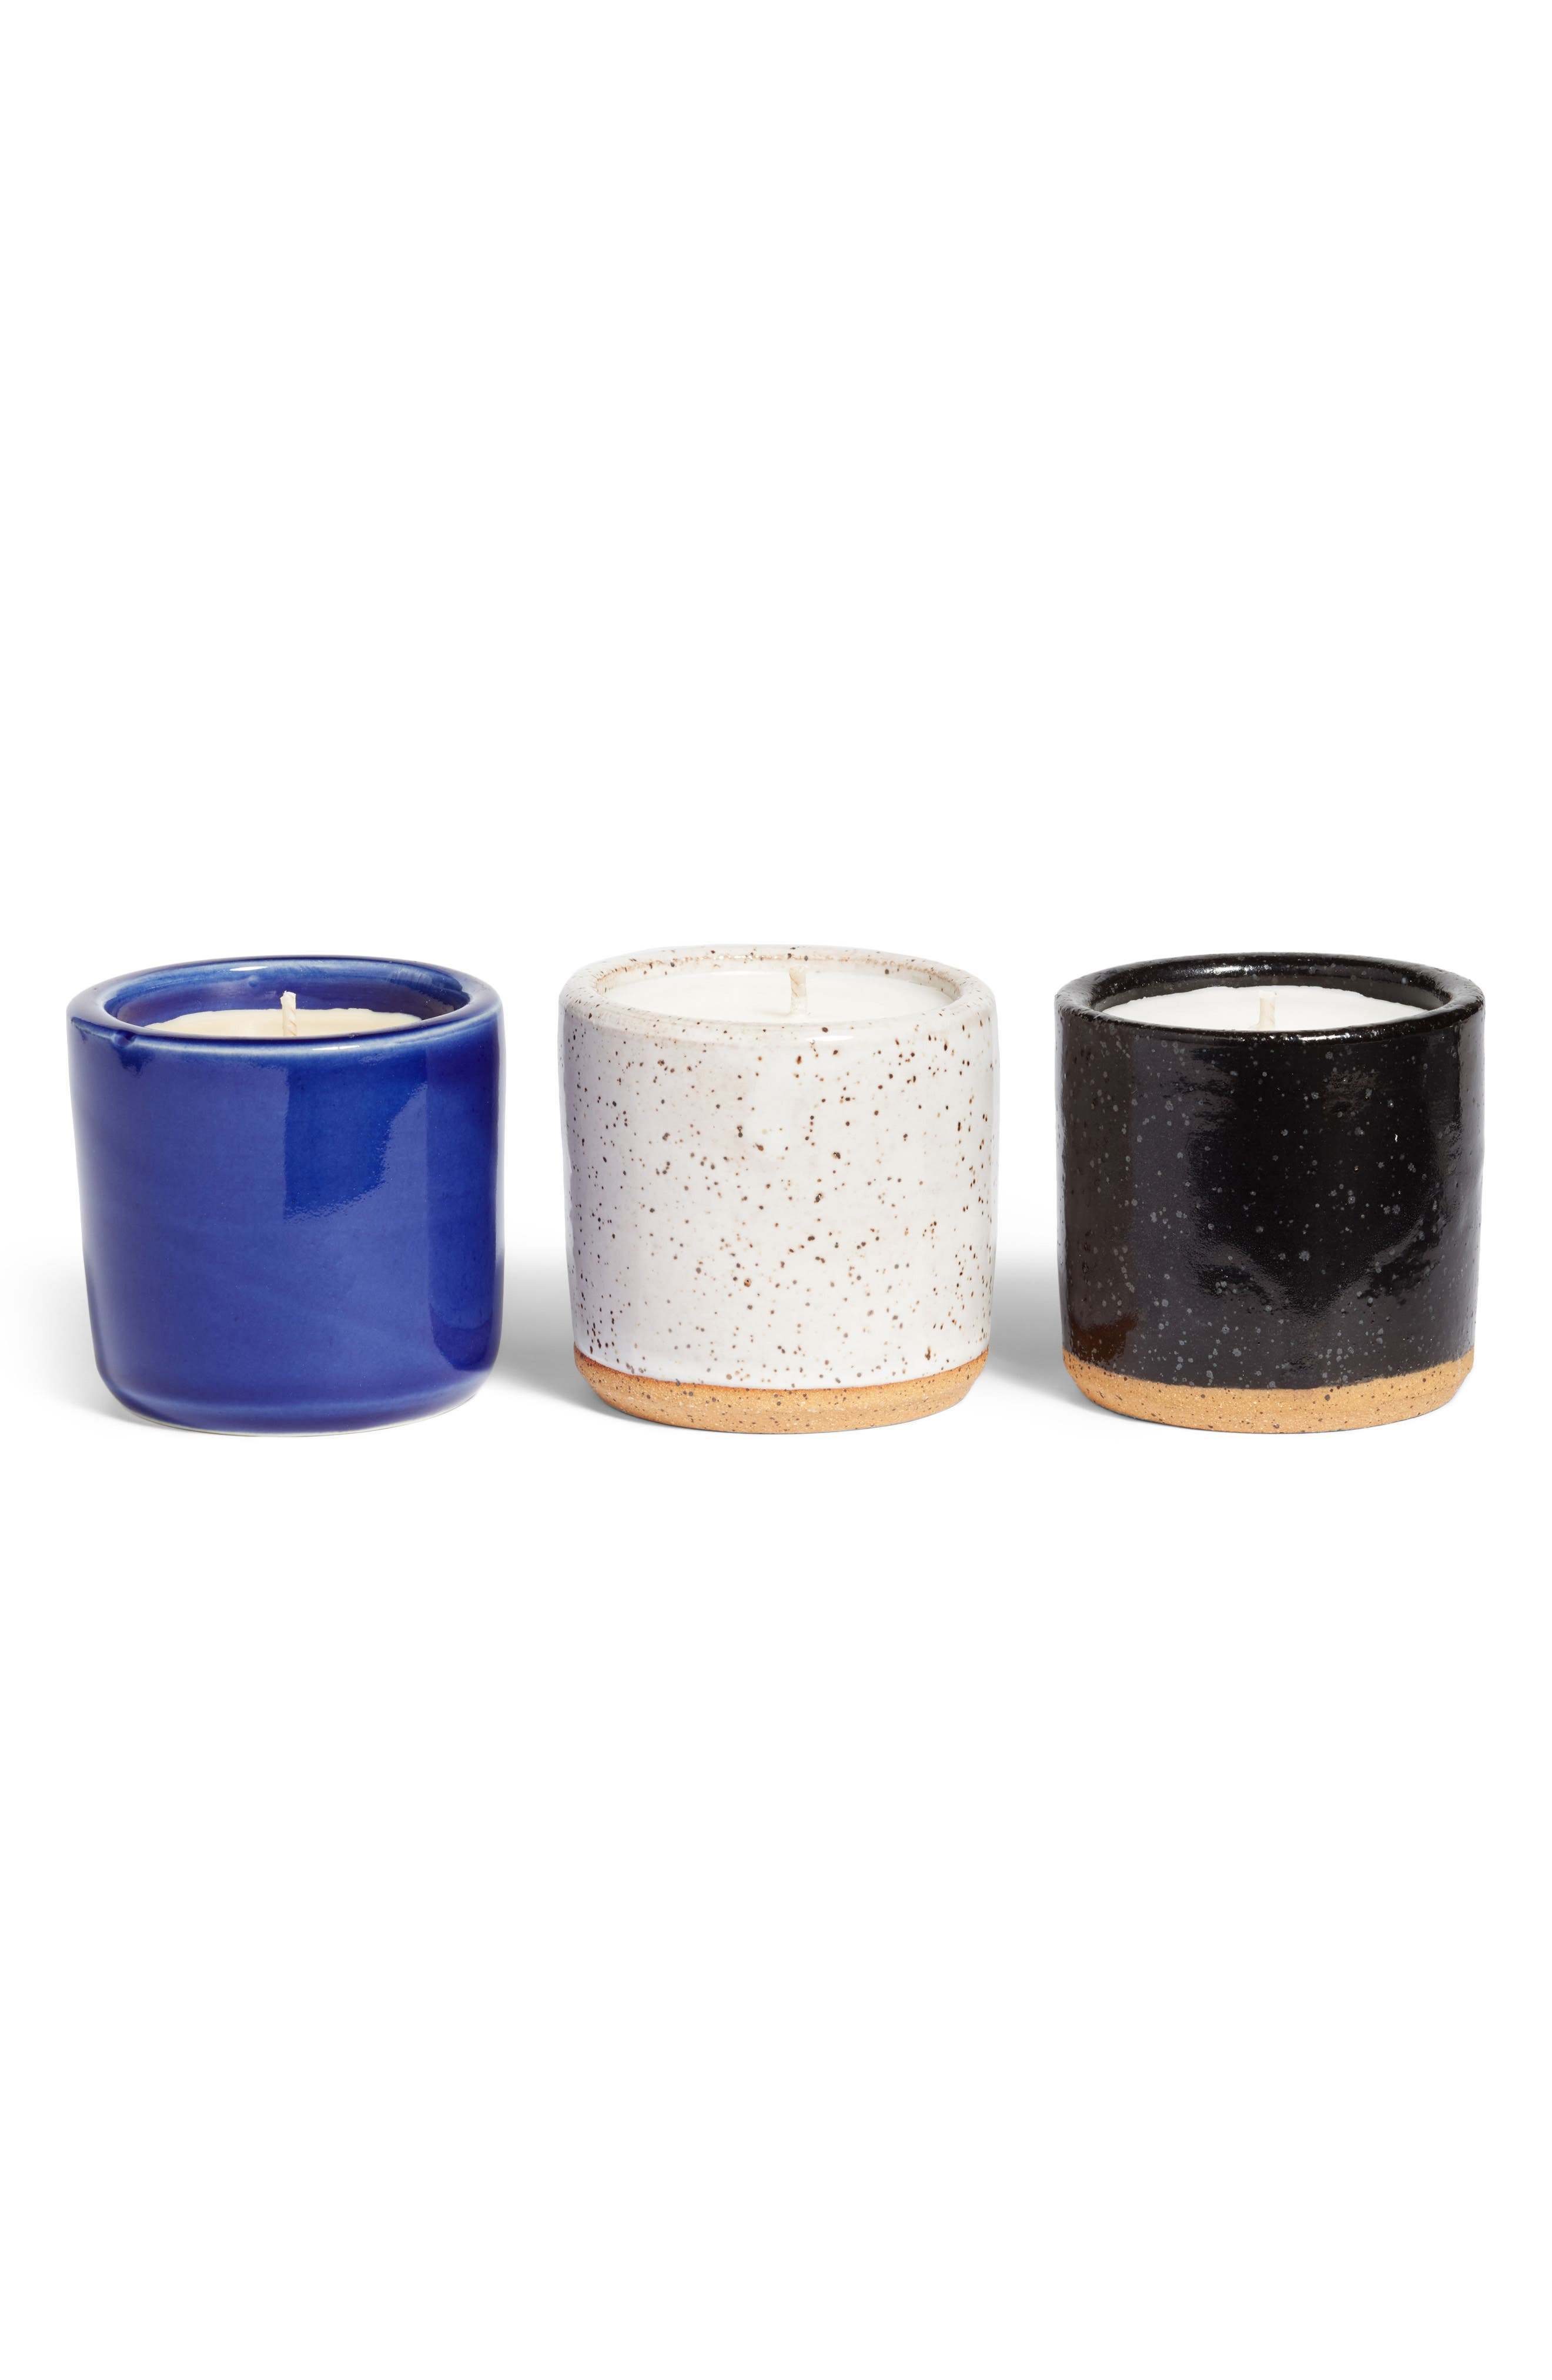 Norden Set of 3 Ceramic Scented Candles